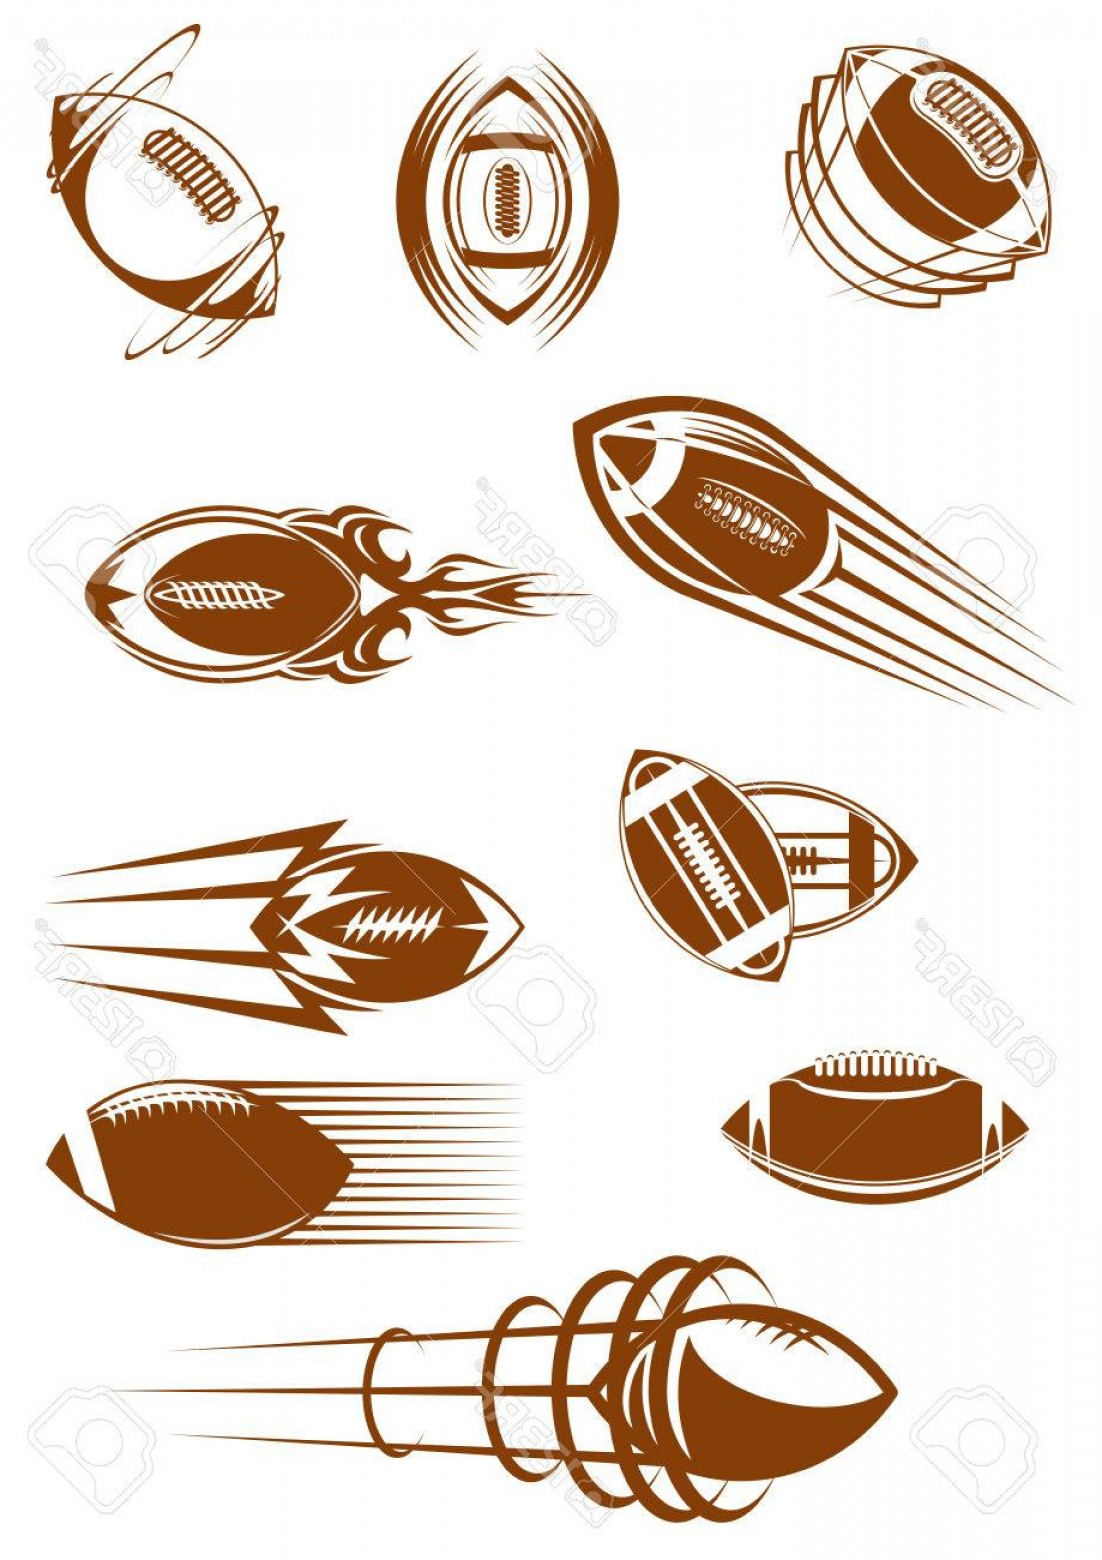 Vector Football Laces And Lines: Photostock Vector Brown Icons Of American Football Or Rugby Leather Balls Whirling And Flying Through The Air With Mot